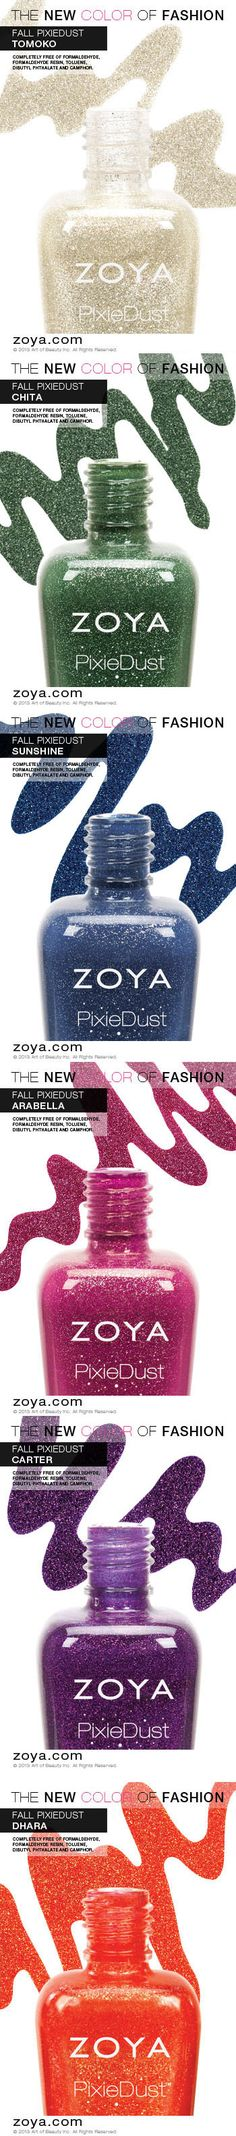 Zoya PixieDust Fall 2013 Edition - ORDER THEM ALL NOW!